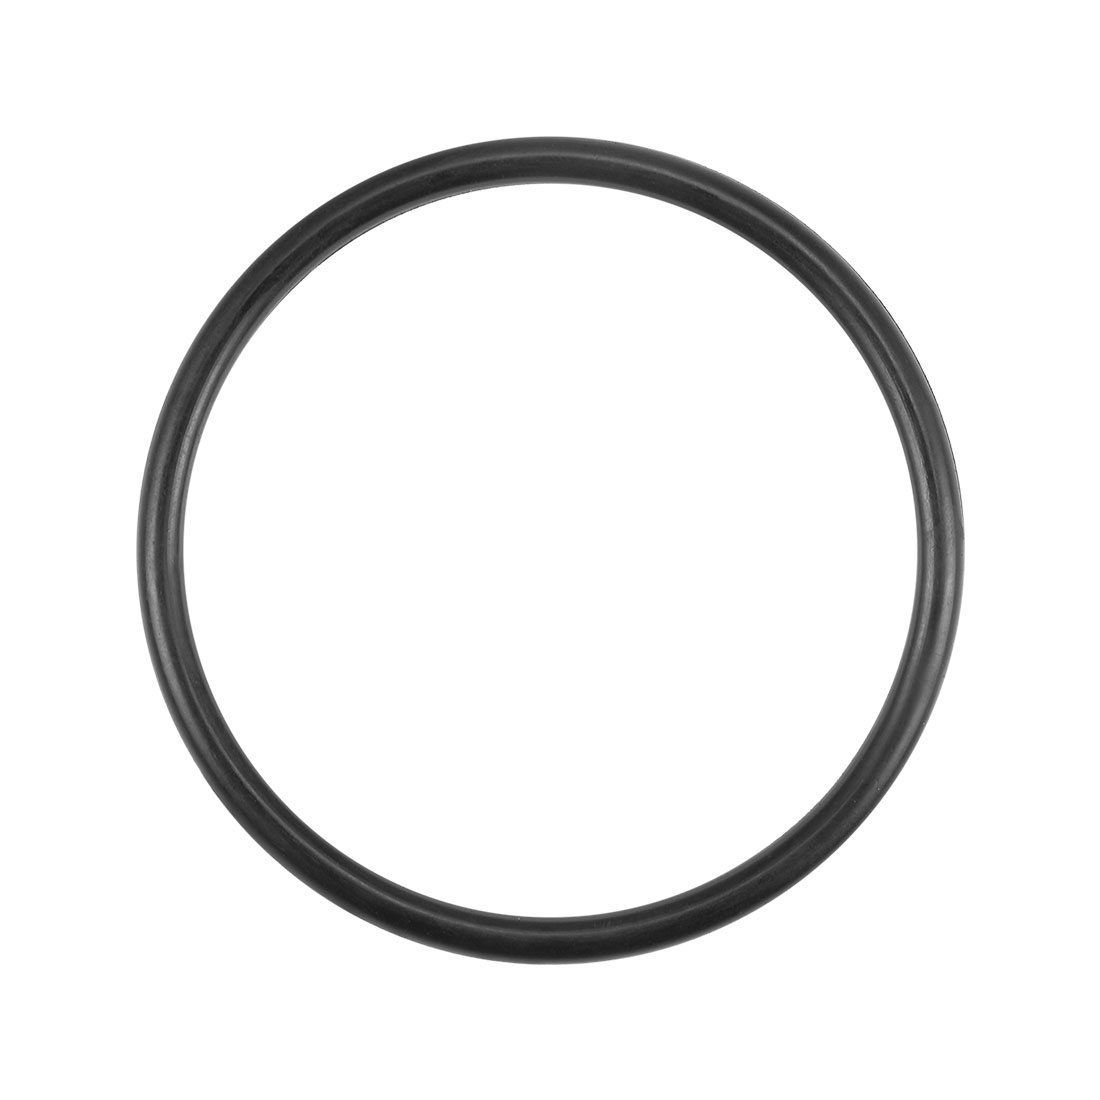 O-Rings Nitrile Rubber 25.8mm x 29.4mm x 1.8mm Round Seal Gasket 20Pcs